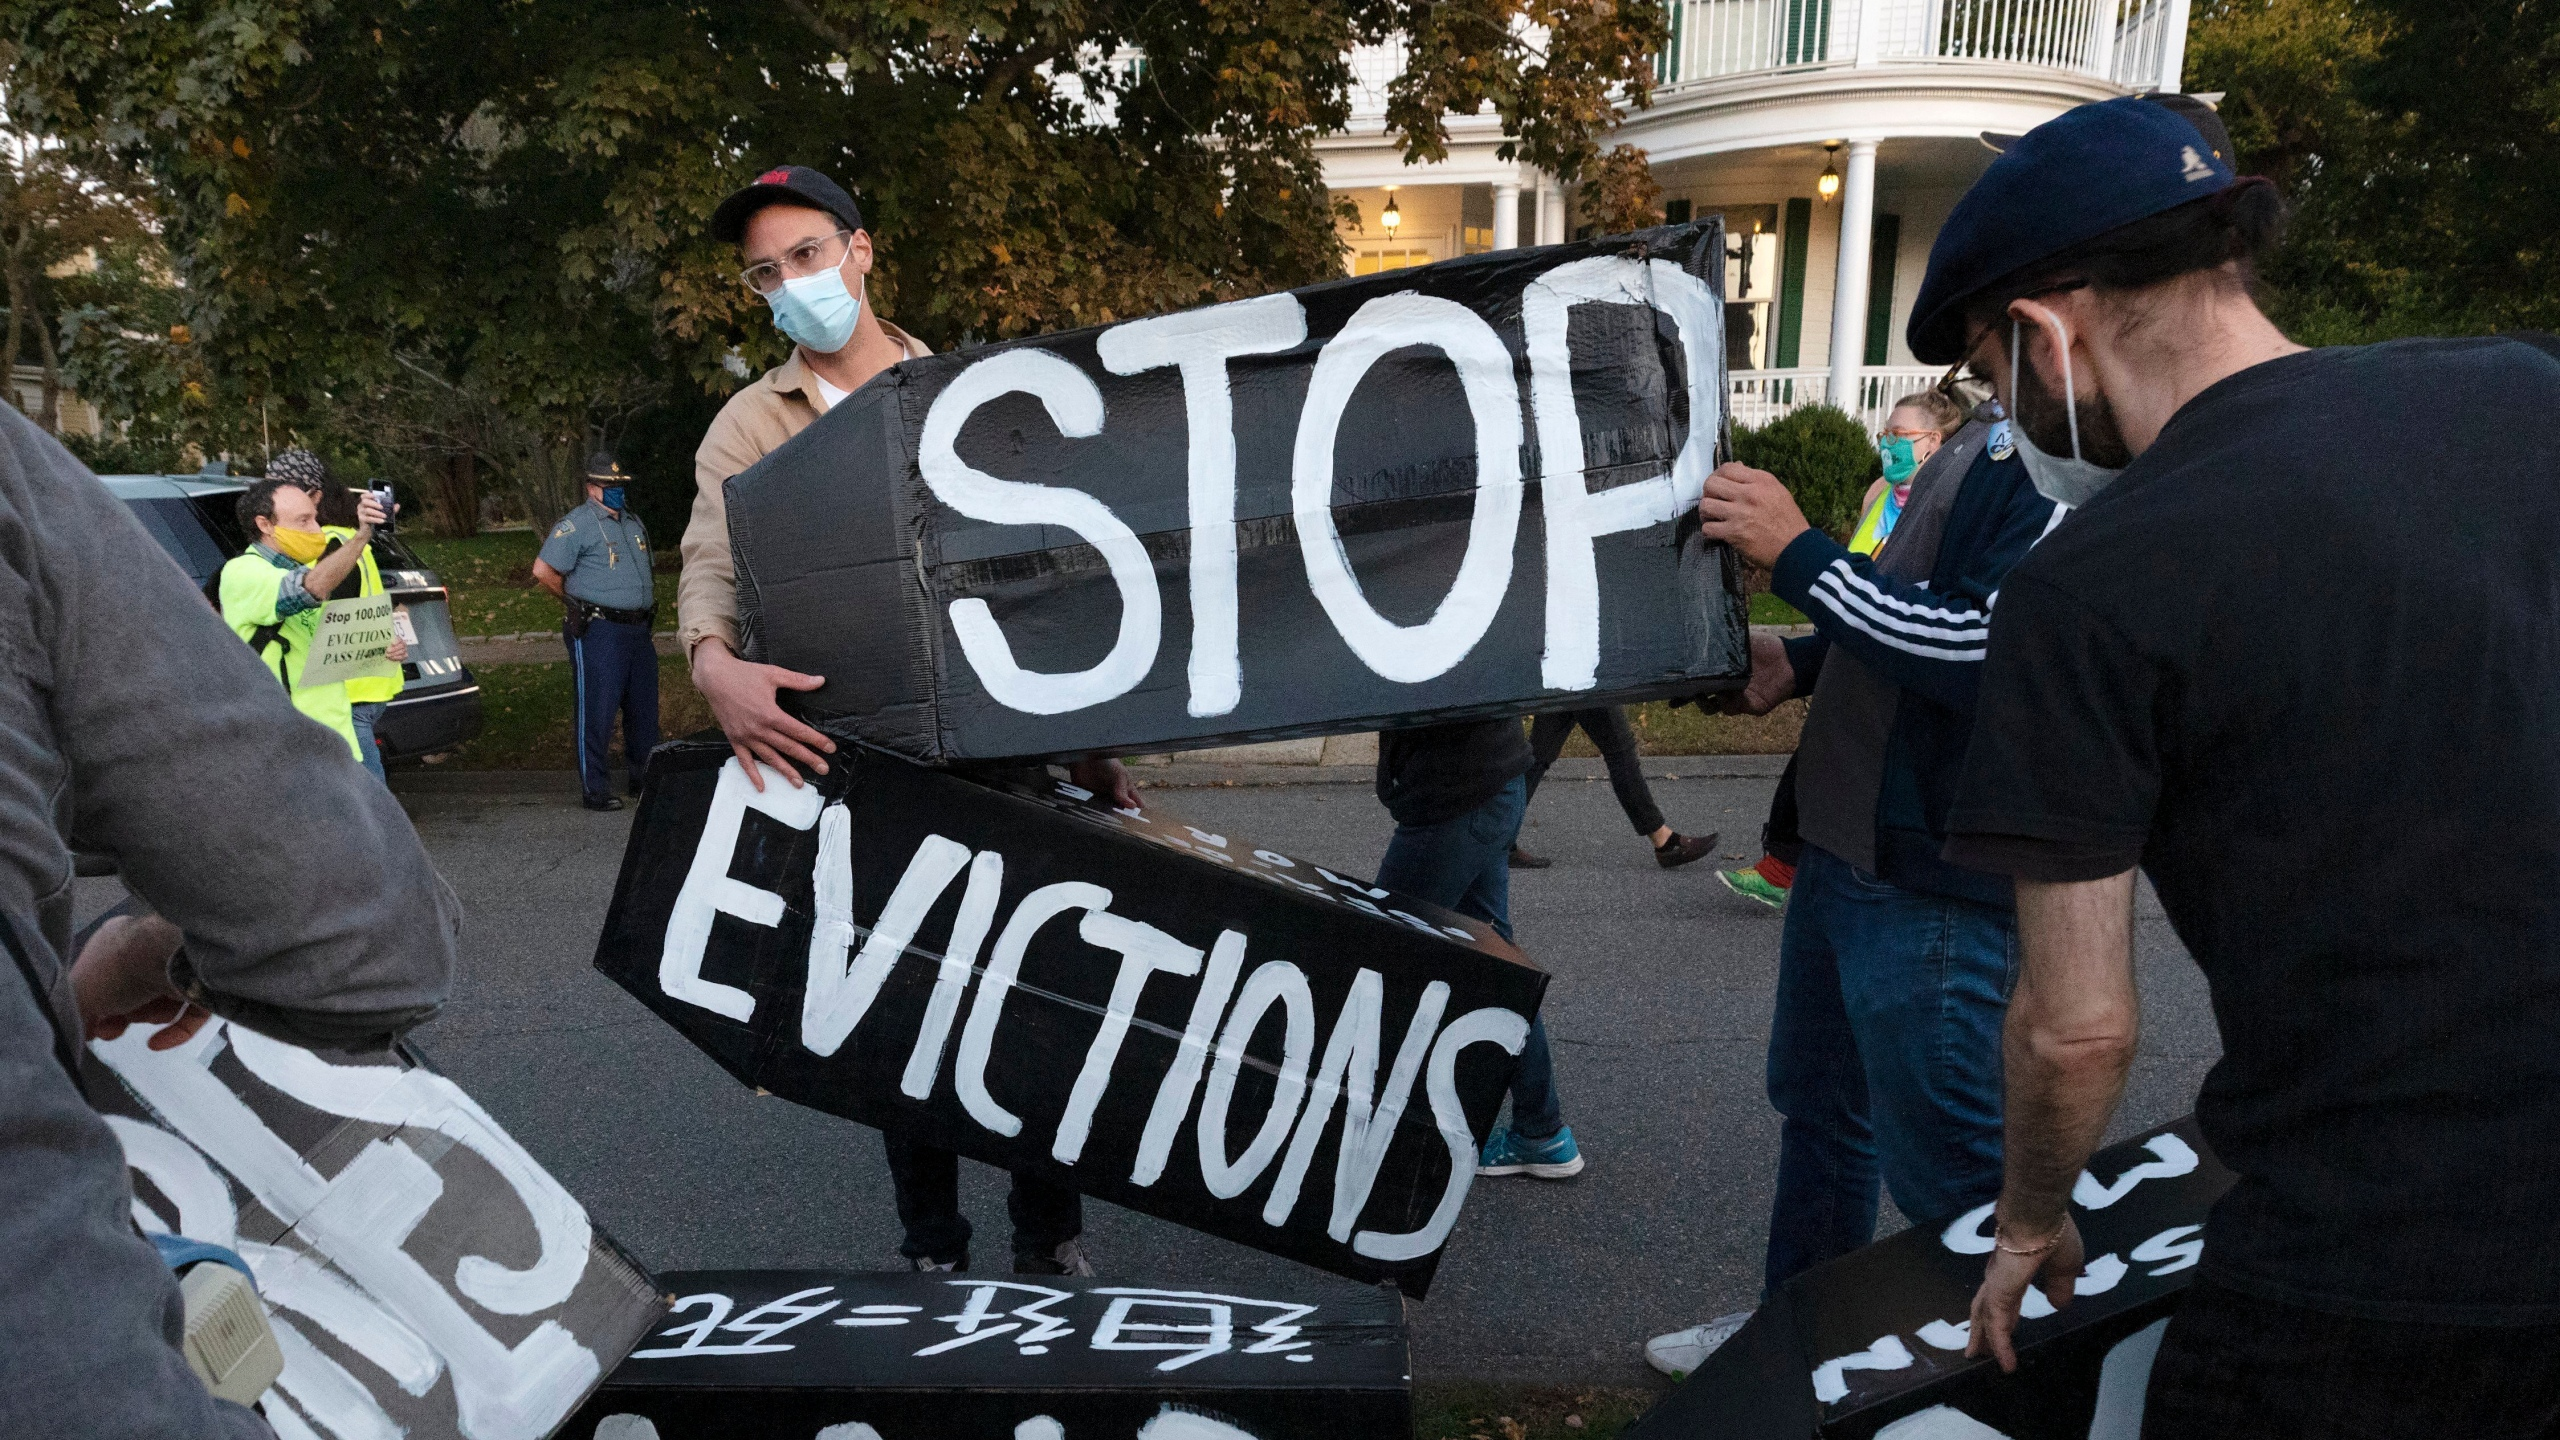 In this Oct. 14, 2020, file photo, housing activists erect a sign in front of Massachusetts Gov. Charlie Baker's house in Swampscott, Mass. (AP Photo/Michael Dwyer, File)